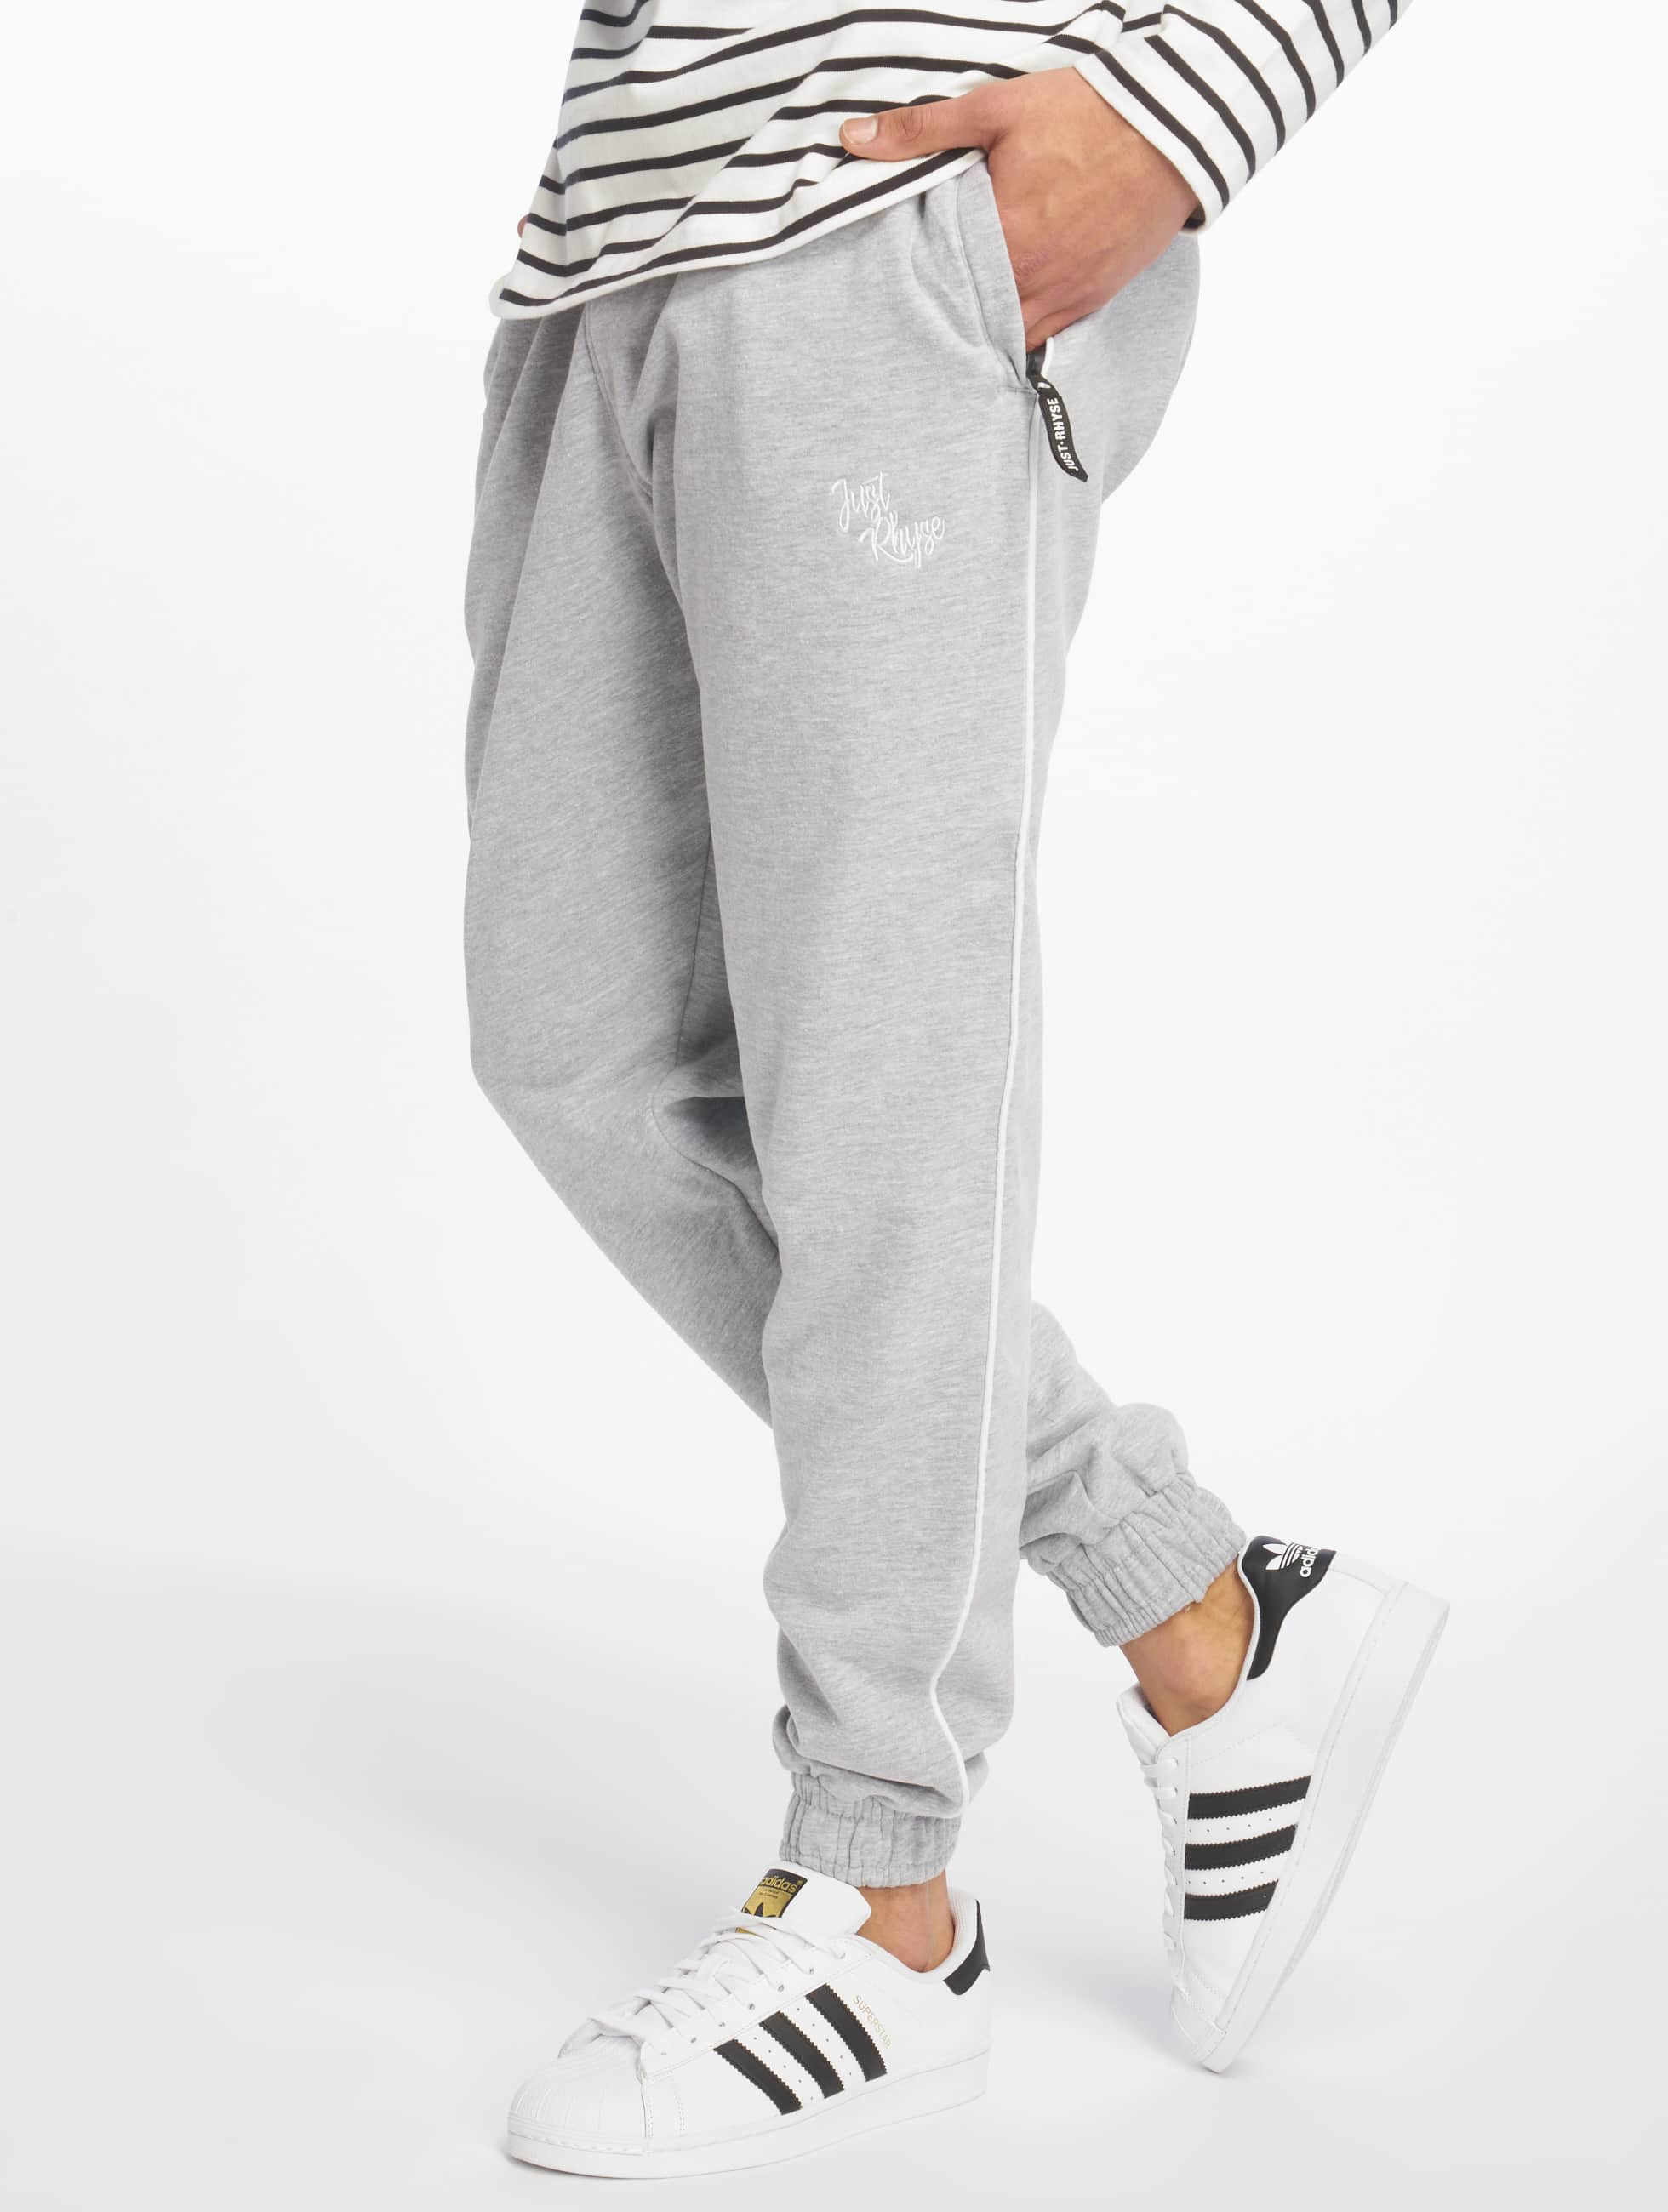 Just Rhyse / Sweat Pant Lake City in grey S